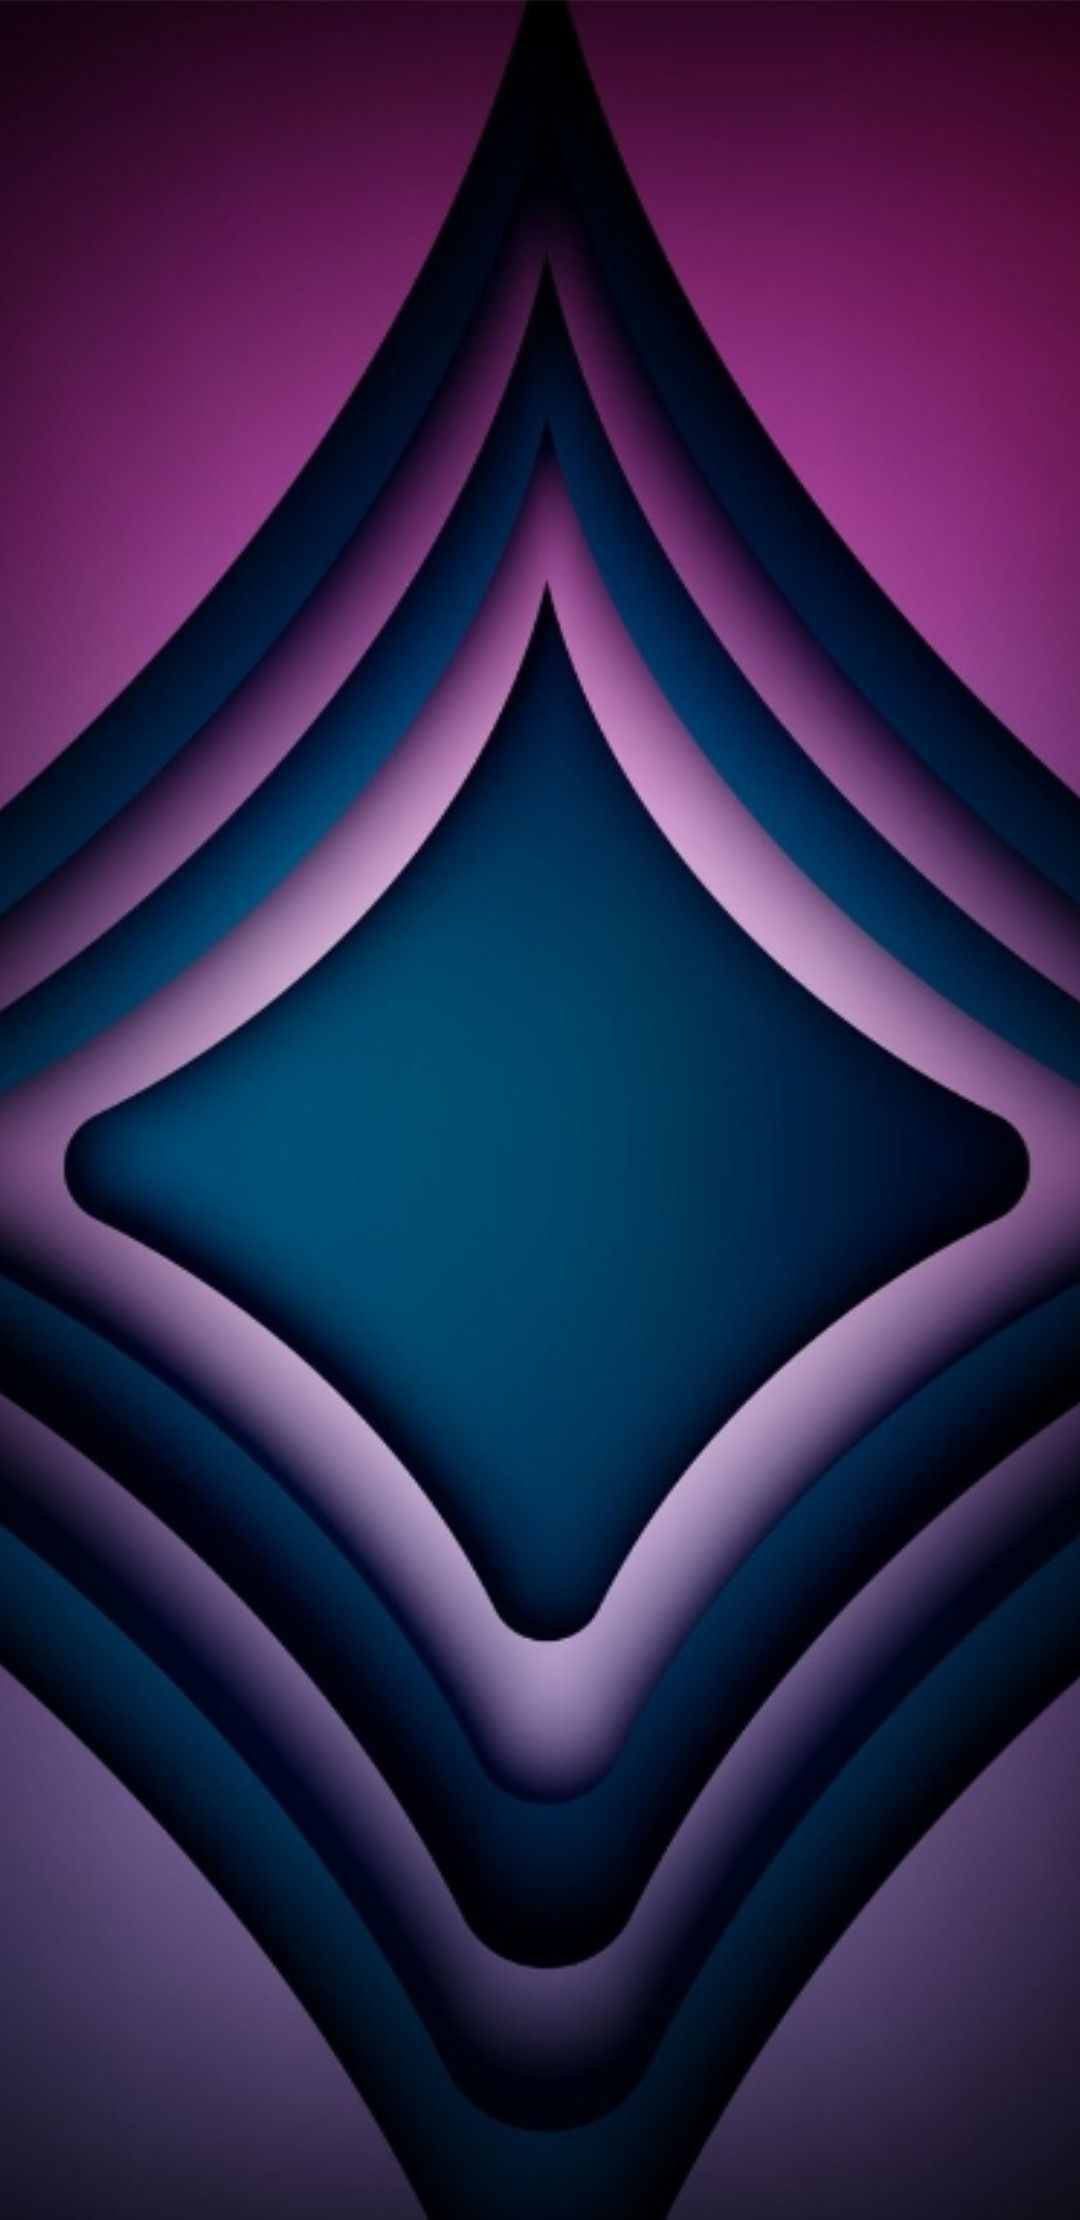 Get New Abstract Phone Wallpaper HD This Month by Uploaded by user